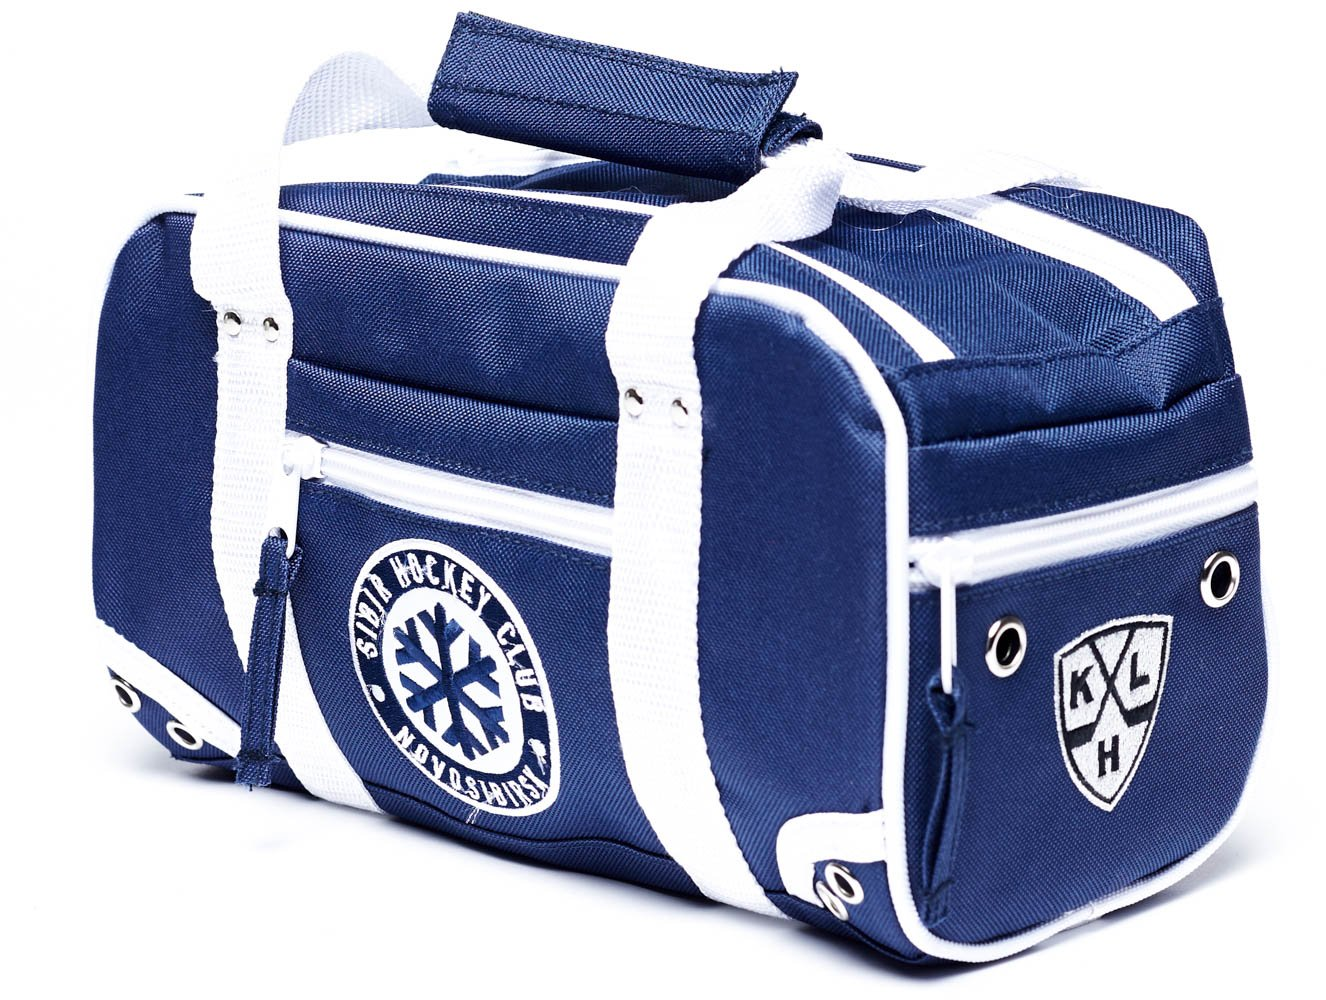 Cheap Hockey Kit Bag Find Hockey Kit Bag Deals On Line At Alibaba Com